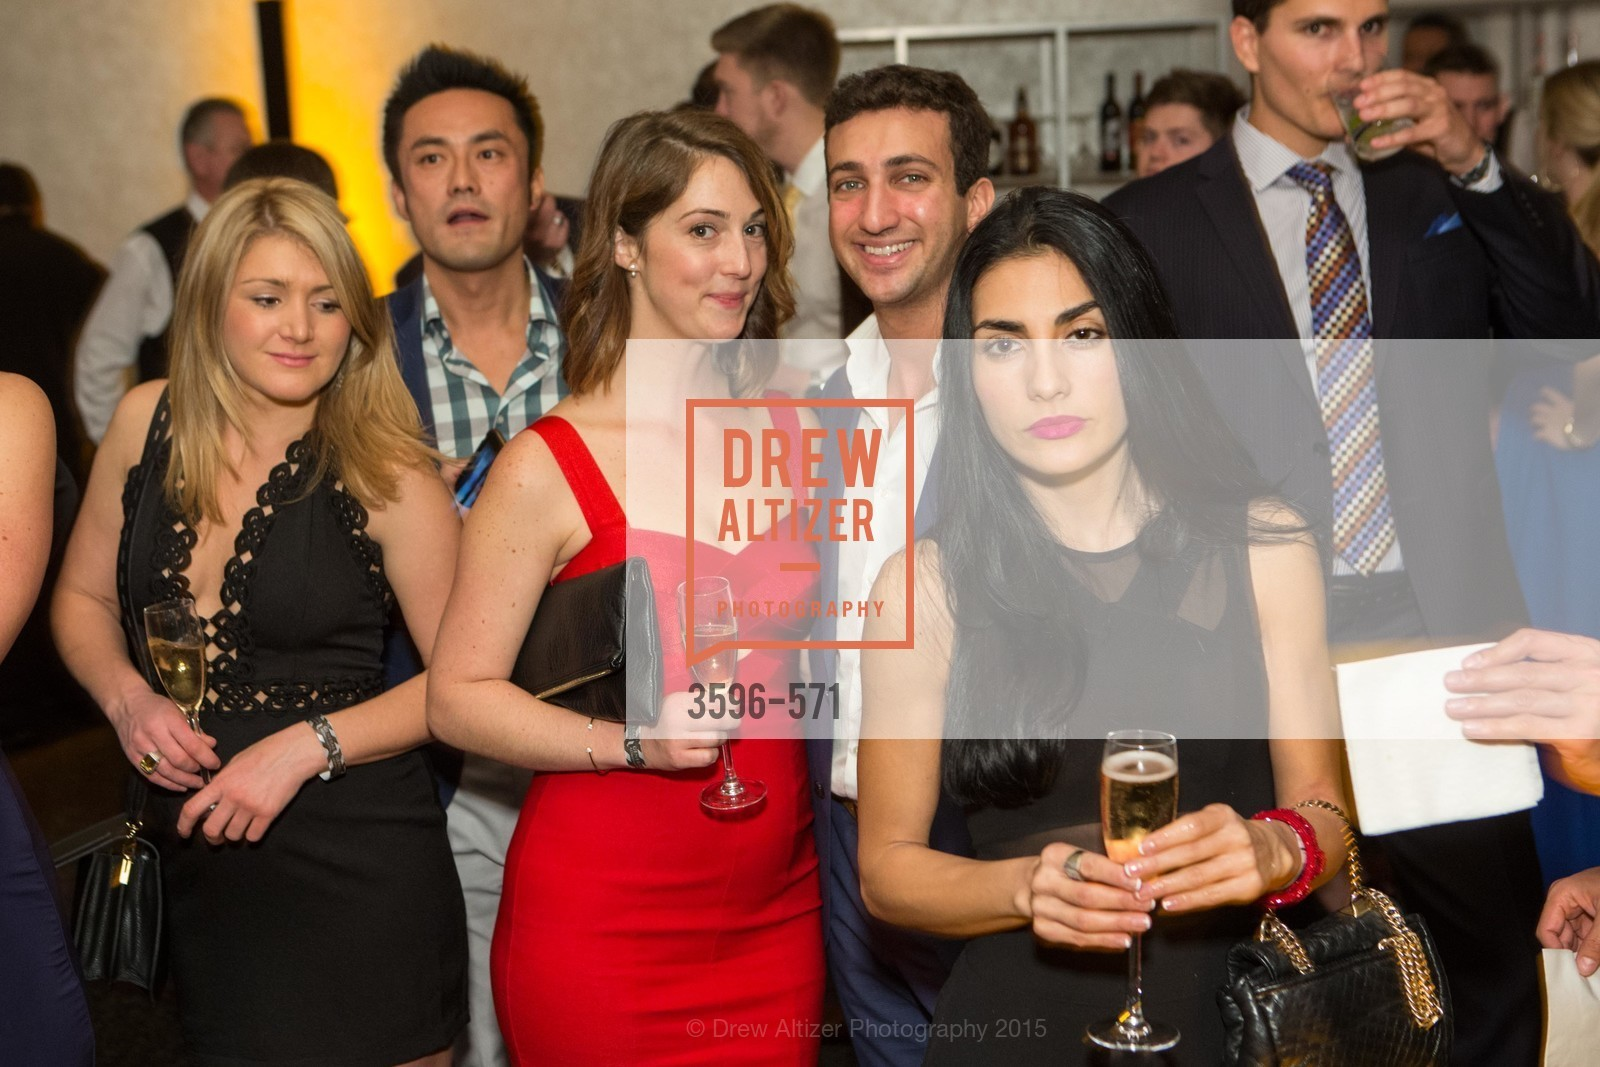 Extras, The 10th Annual San Francisco Social, November 21st, 2015, Photo,Drew Altizer, Drew Altizer Photography, full-service agency, private events, San Francisco photographer, photographer california